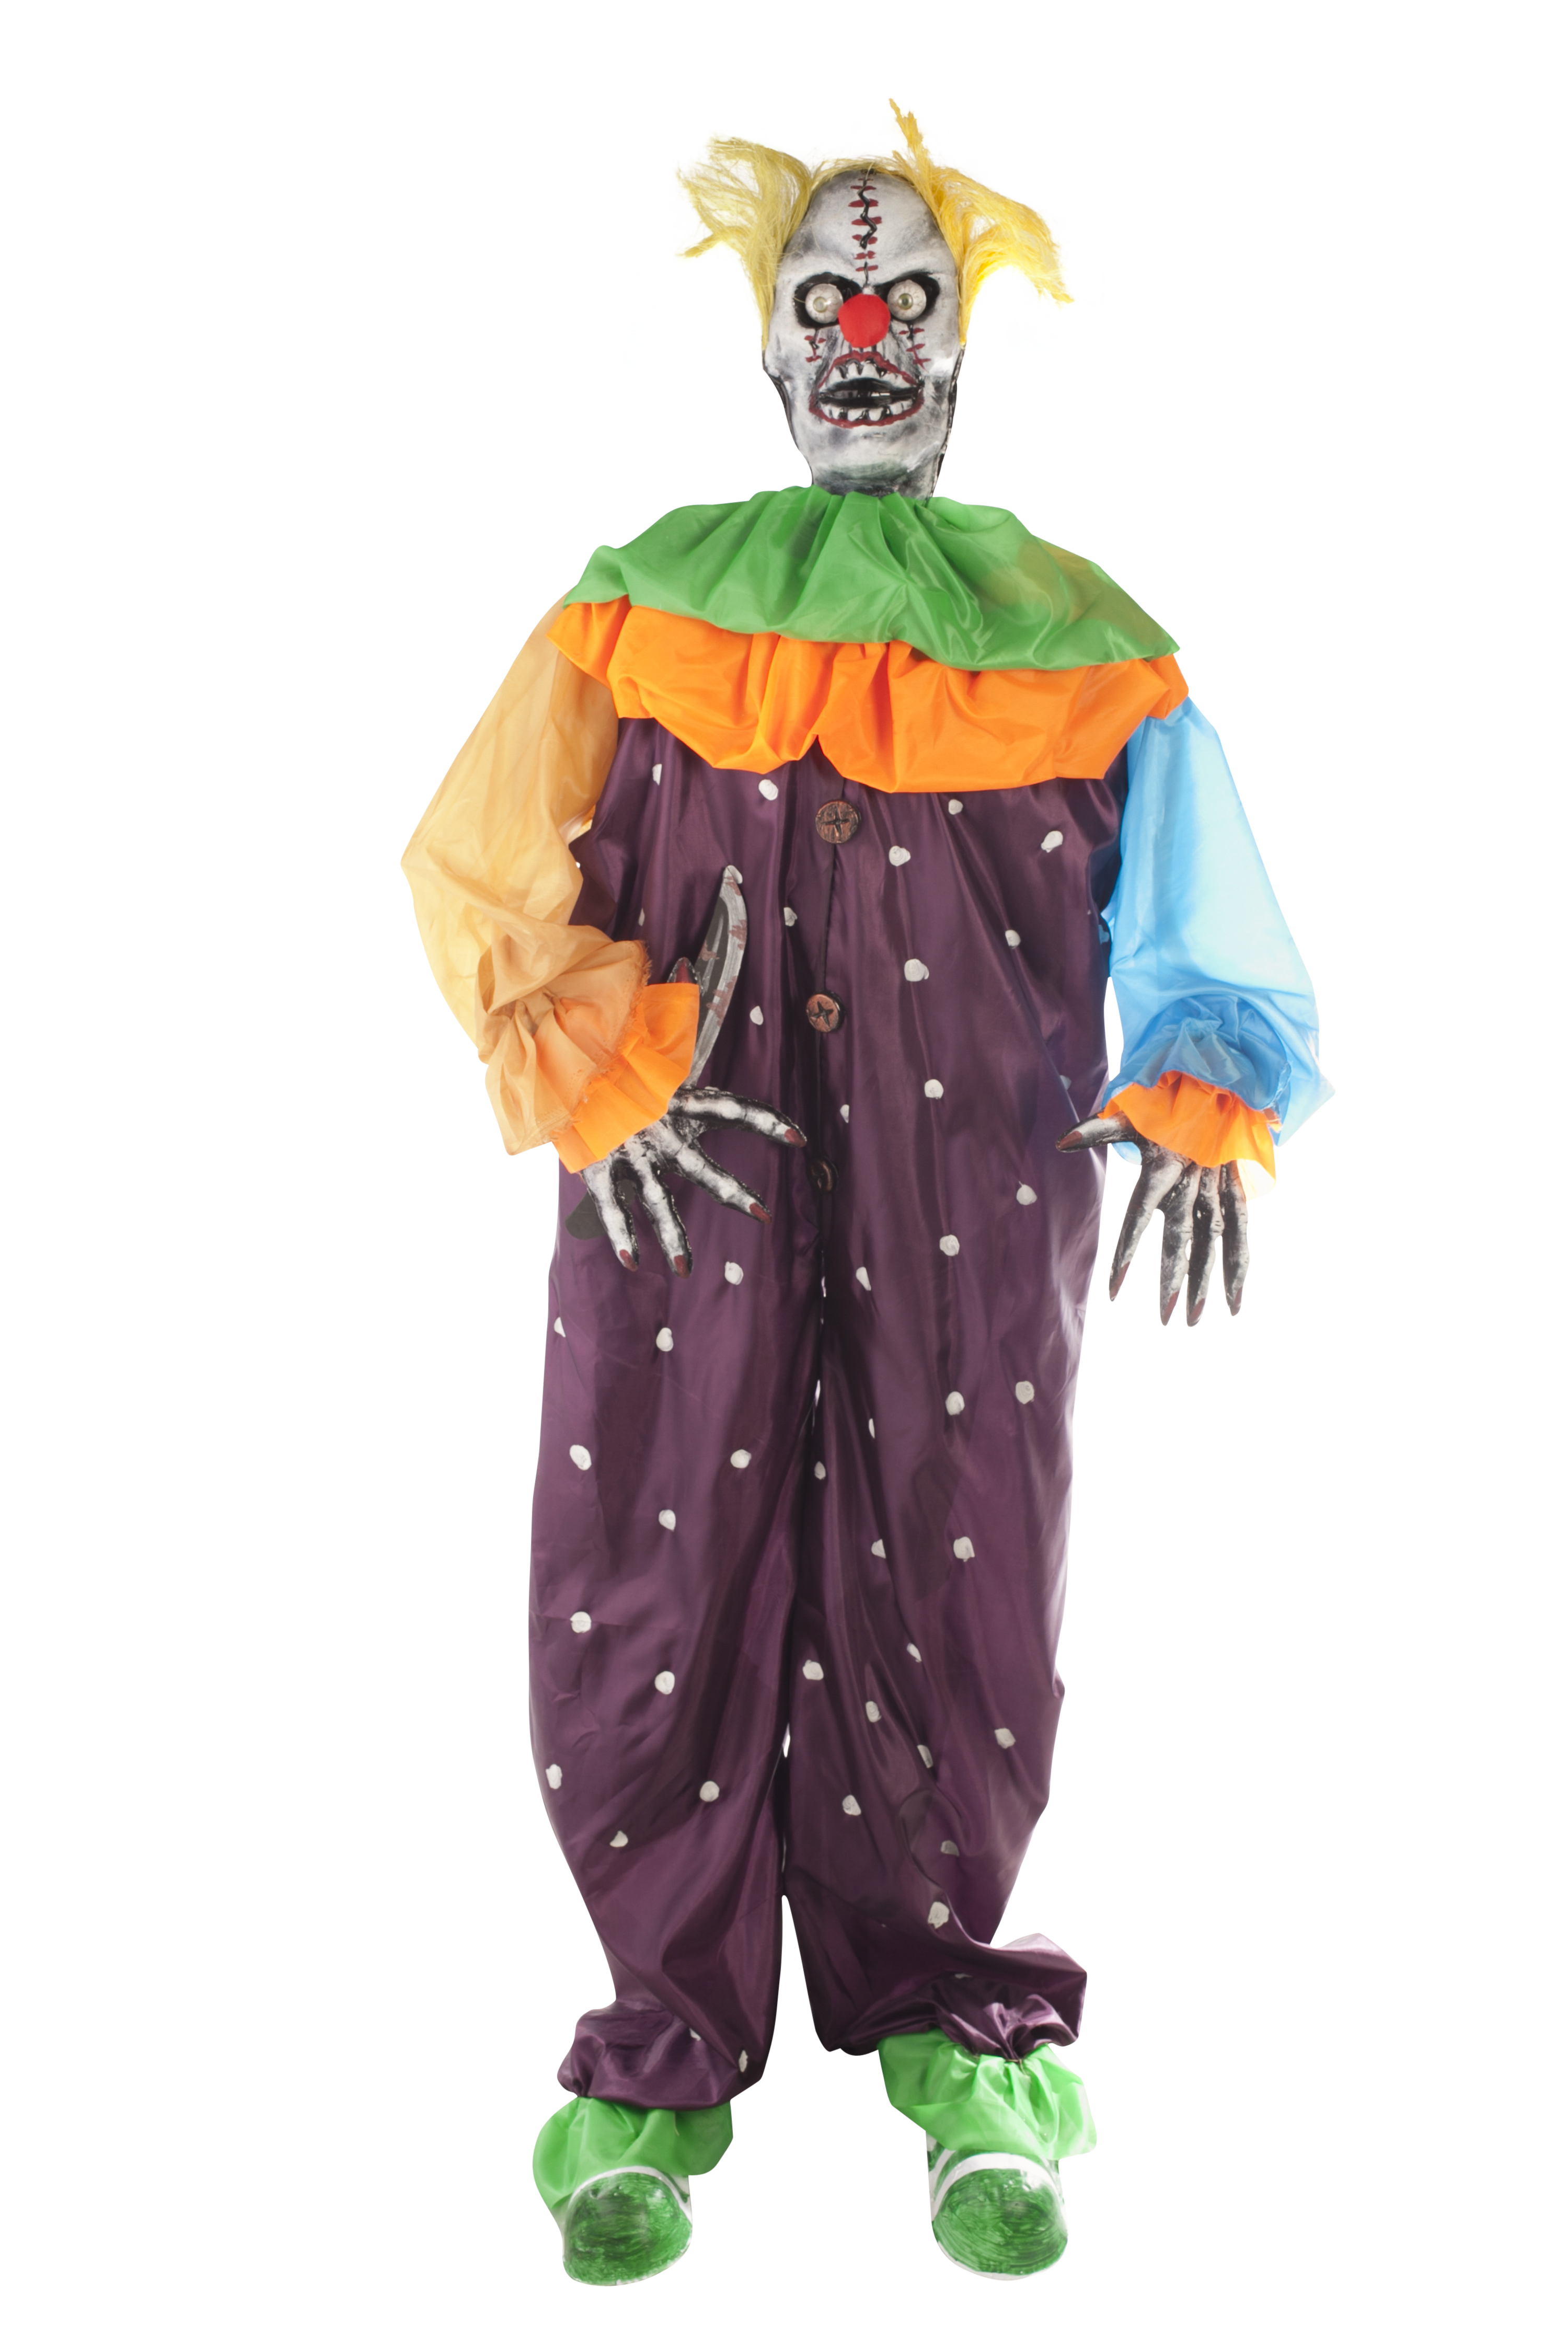 Clown standing png. Props budgey the lifesized